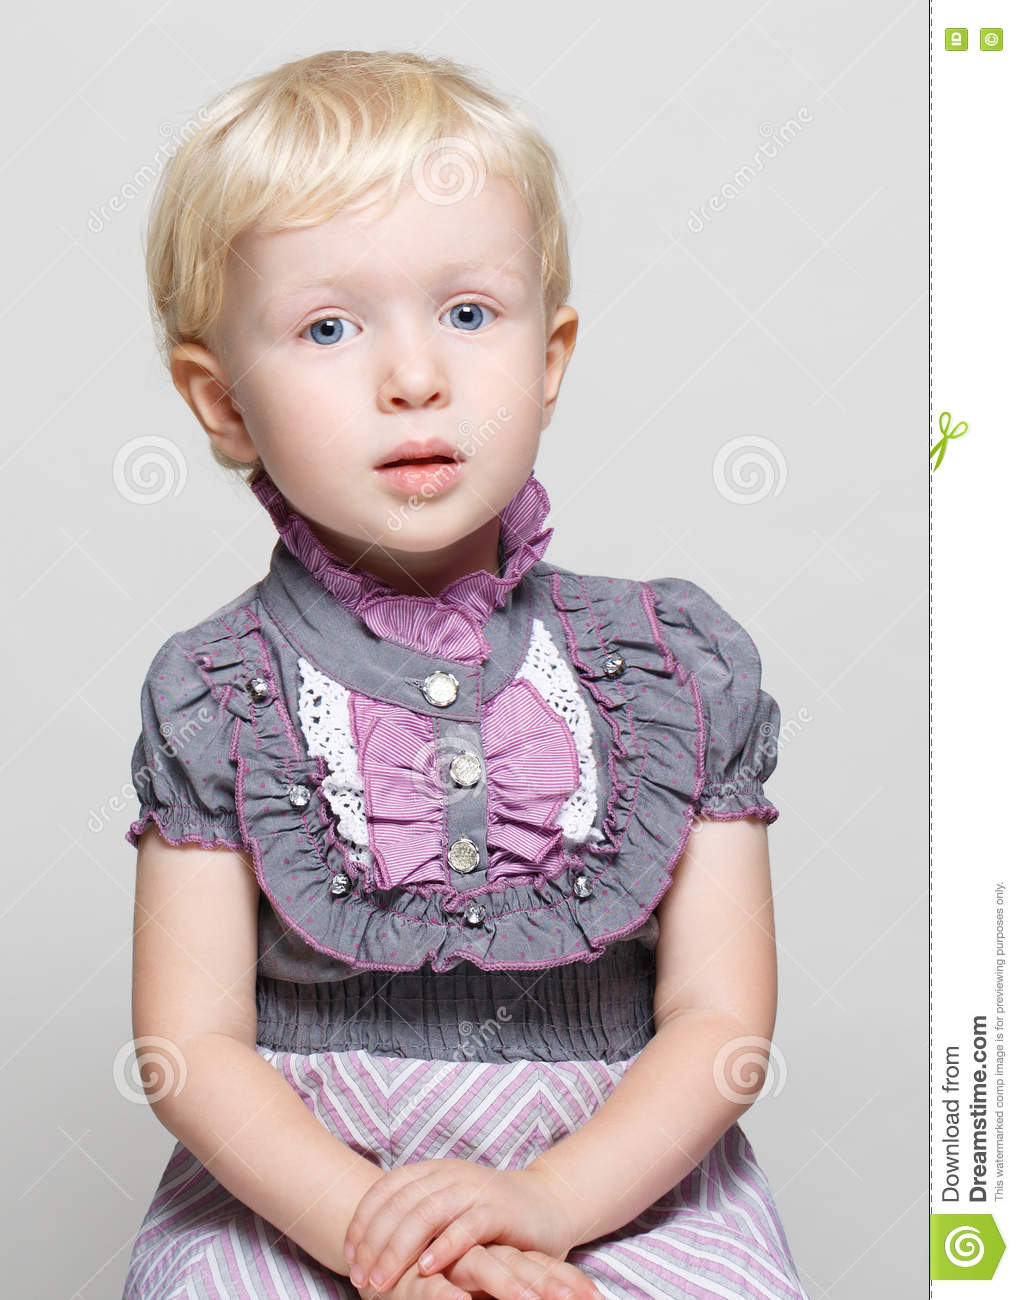 closeup portrait of cute child toddler with blonde hair and